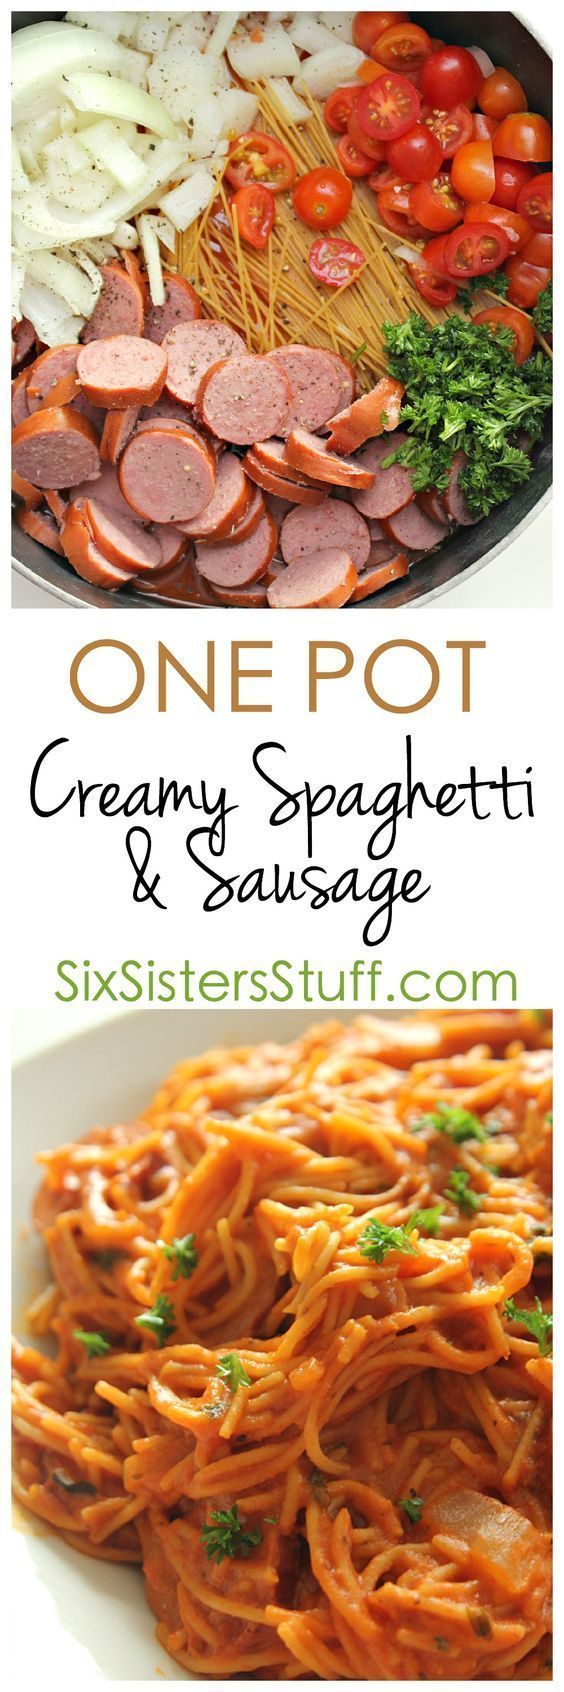 One Pot Creamy Spaghetti and Sausage Recipe | Six Sisters' Stuff - The Best Easy One Pot Pasta Family Dinner Recipes #onepotpasta #onepotmeals #pastarecipes #onepotpastarecipes #onepotrecipes #mealprep #pasta #simplefamilymeals #simplefamilyrecipes #simplerecipes